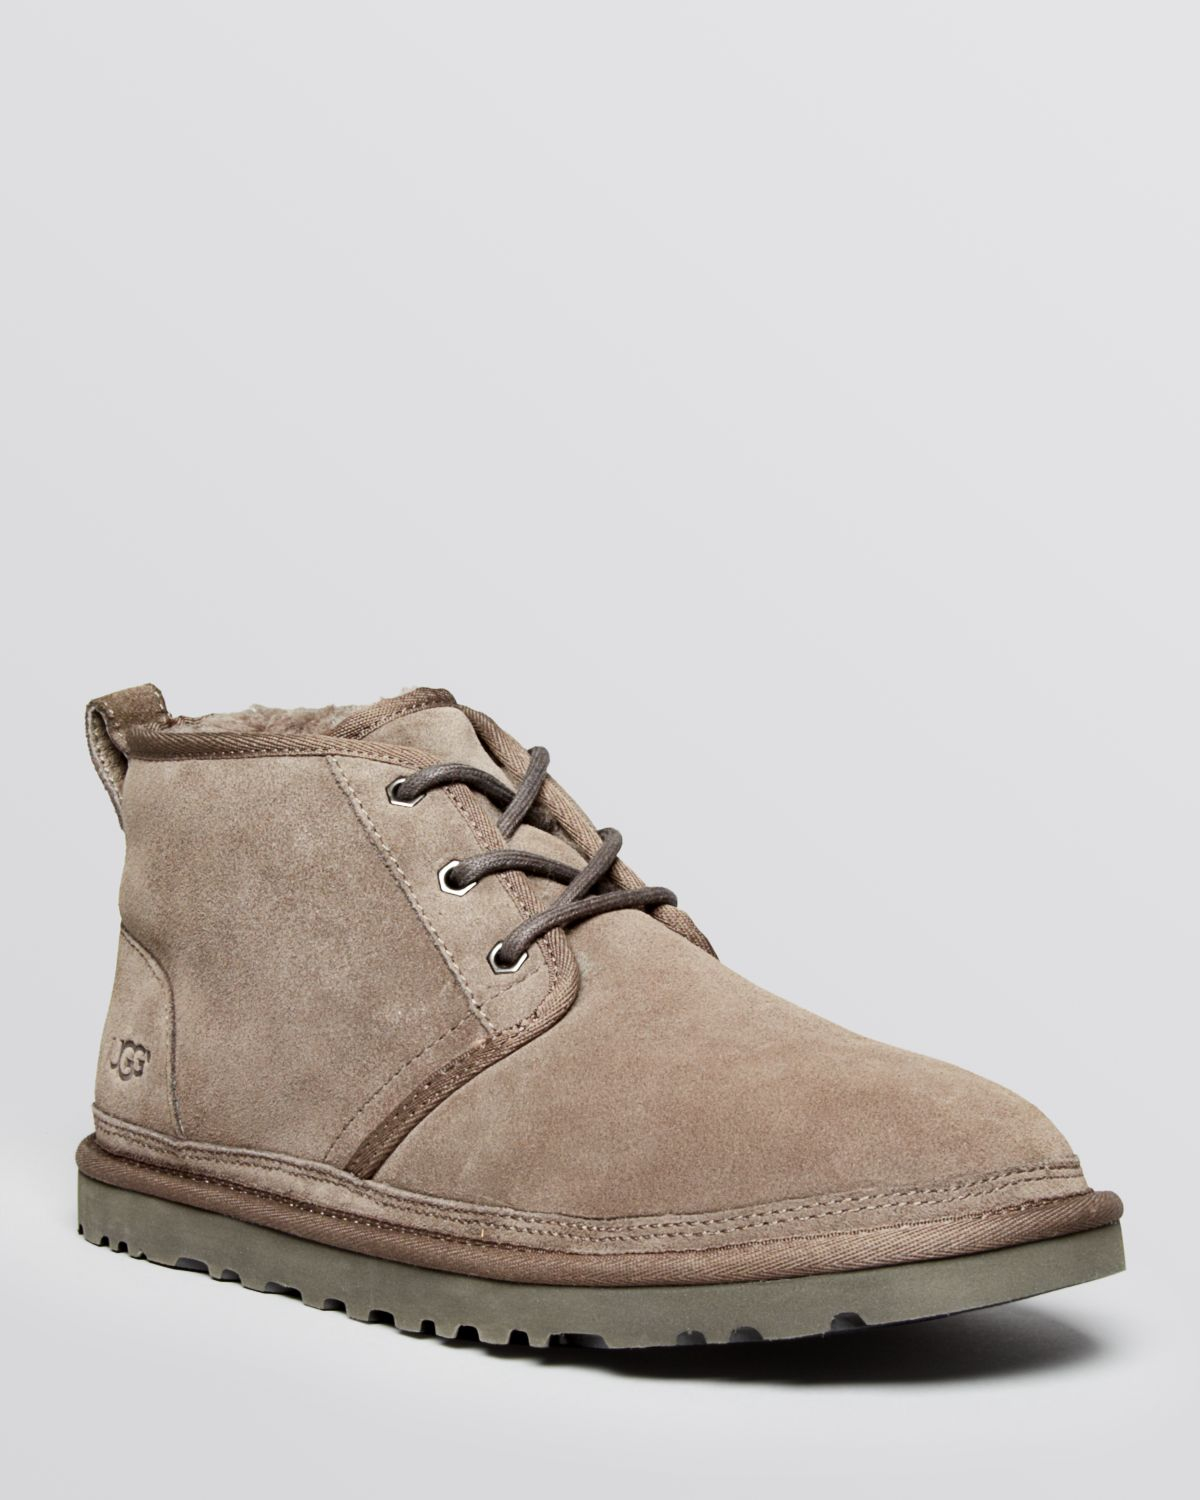 3413d461f65 UGG Gray Neumel Suede Chukka Boots for men